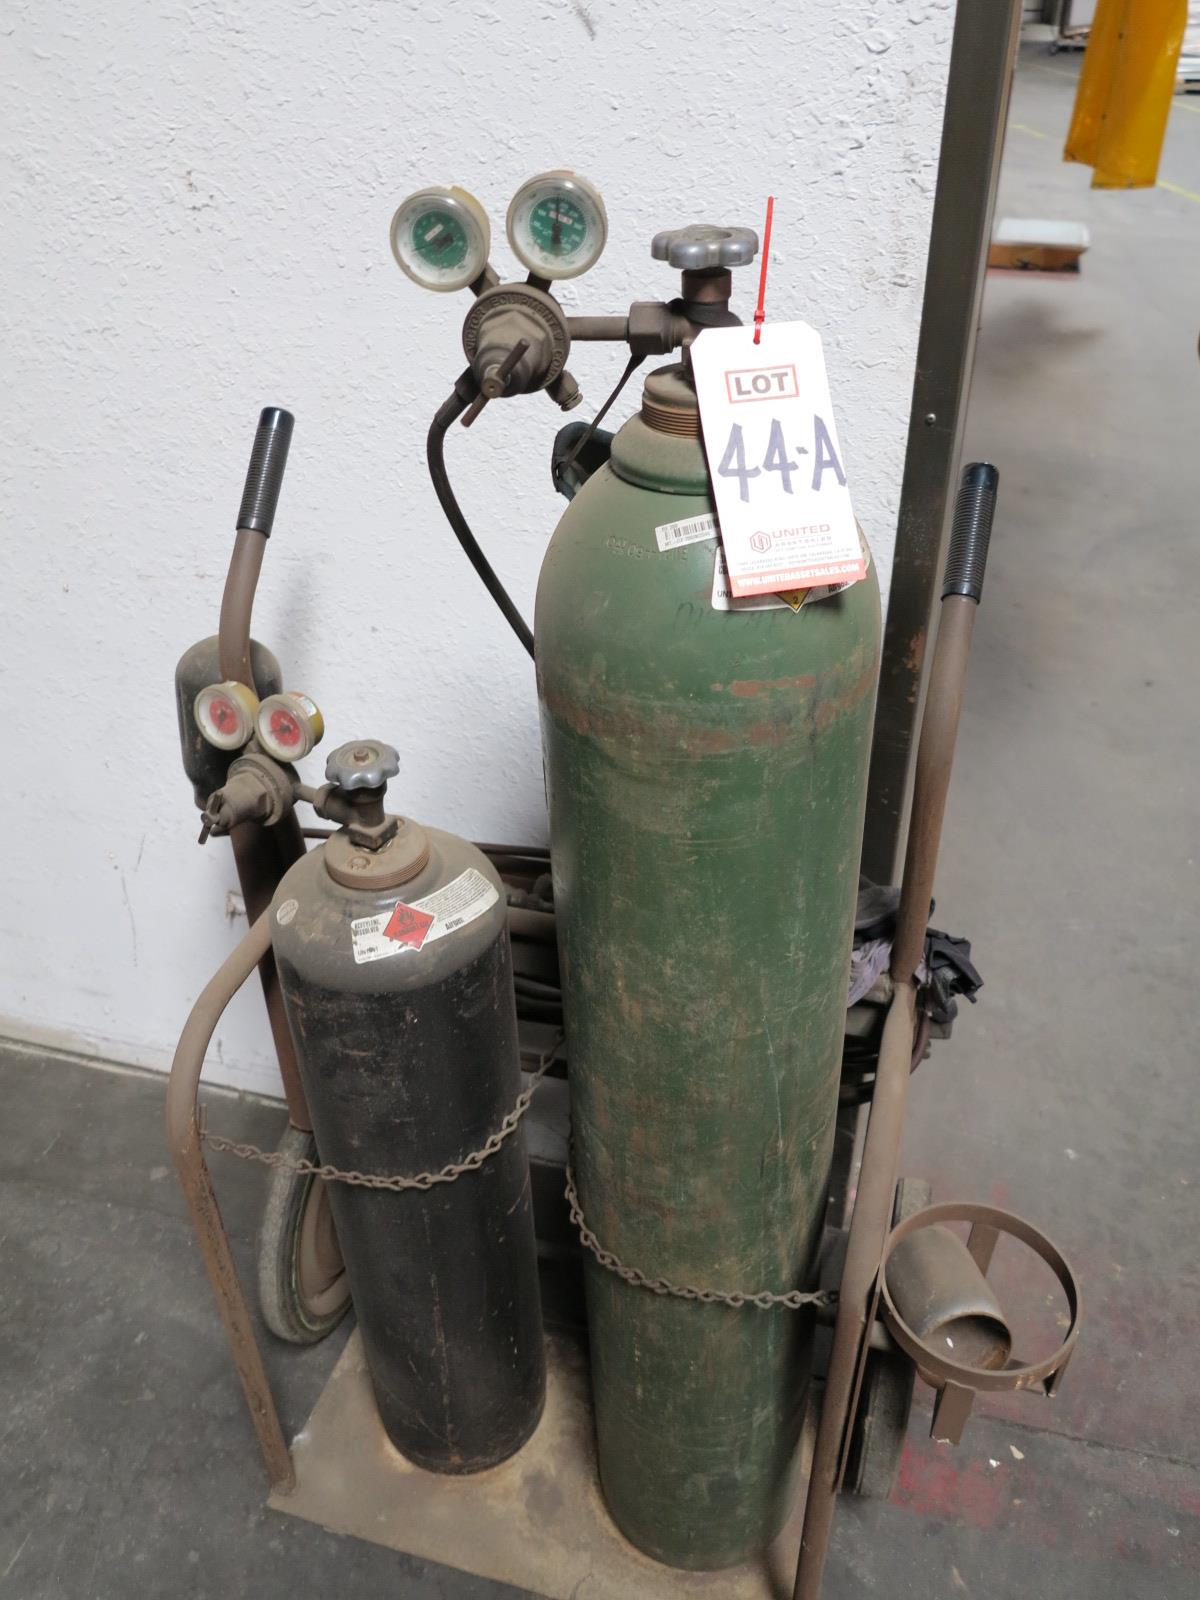 Lot 44A - OXY ACETYLENE CUTTING TORCH CART W/ REGULATORS AND TORCH, TANKS NOT INCLUDED